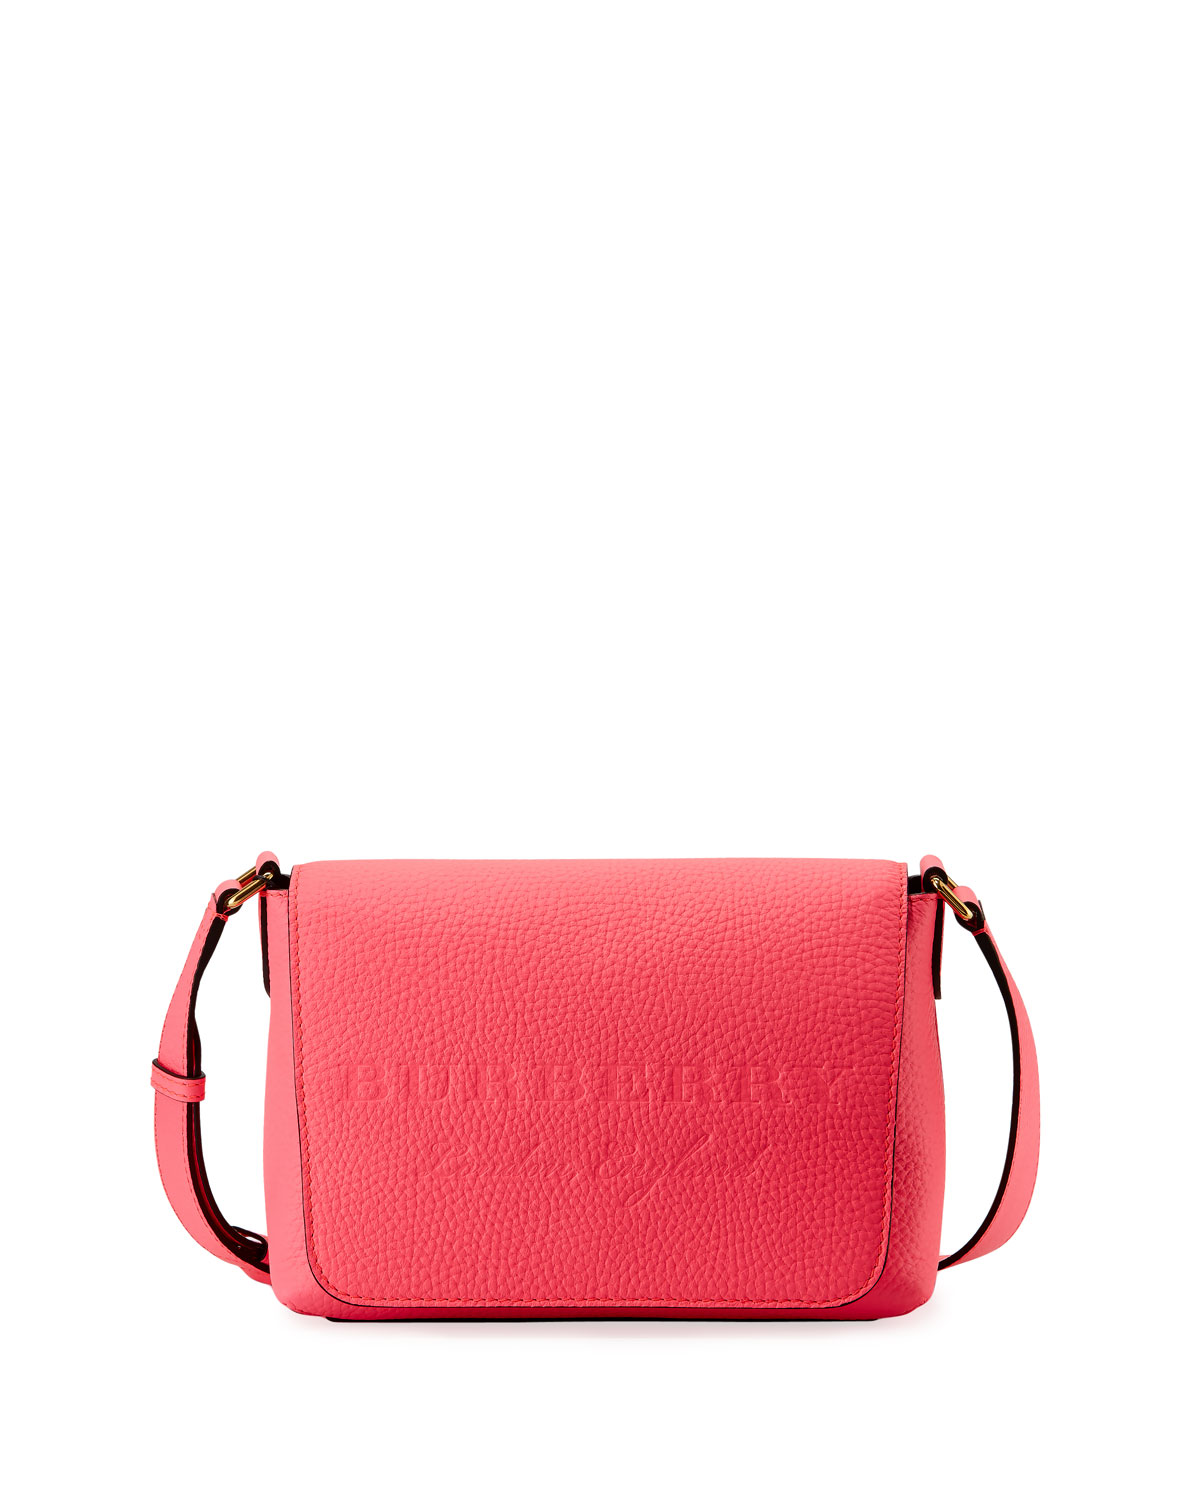 c34eae2761e Burberry Burleigh Small Soft Leather Crossbody Bag, Bright Pink ...